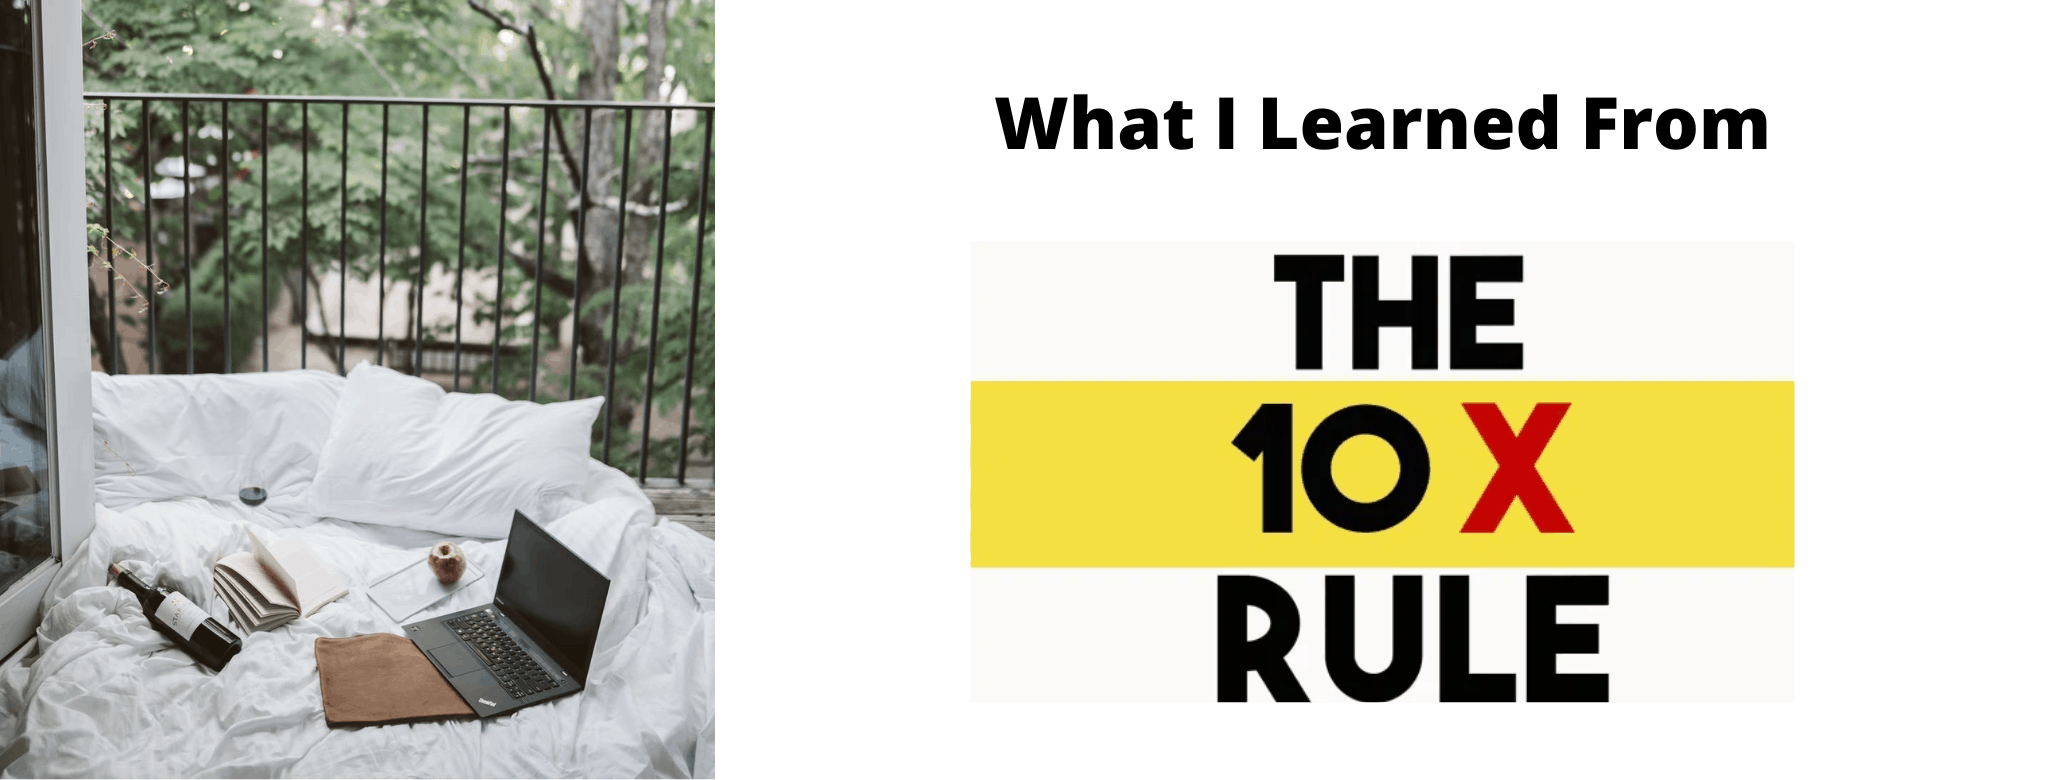 What I learned from the 10x Rule Grant Cardone